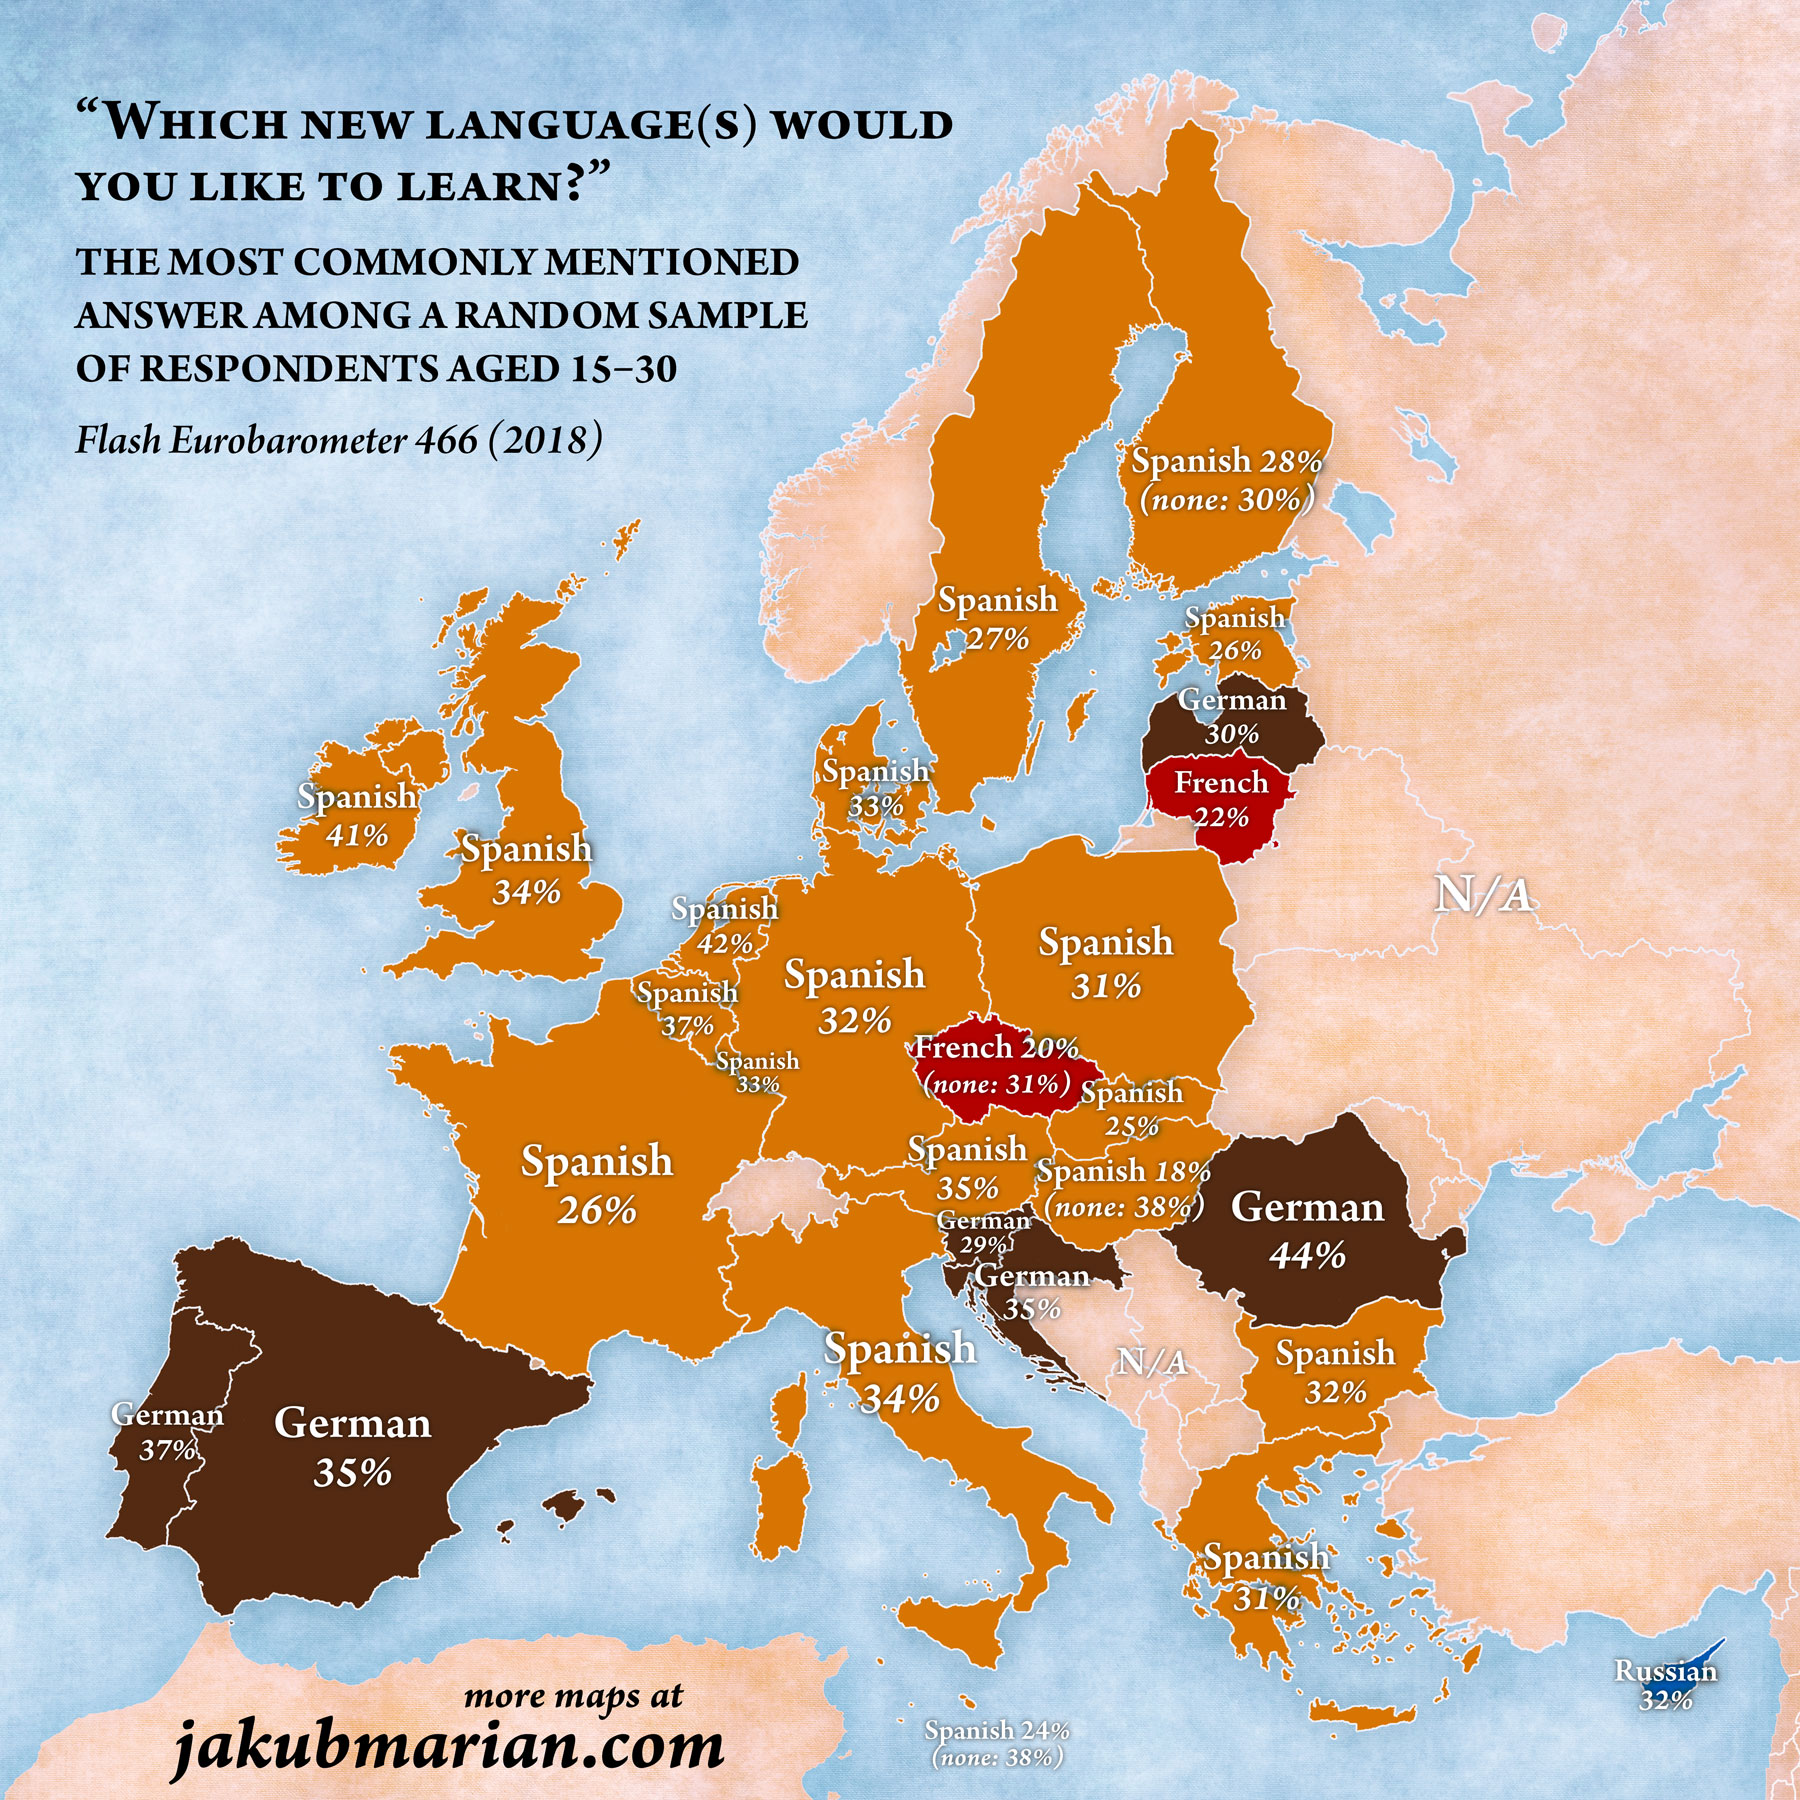 Young Europeans new languages they want to learn